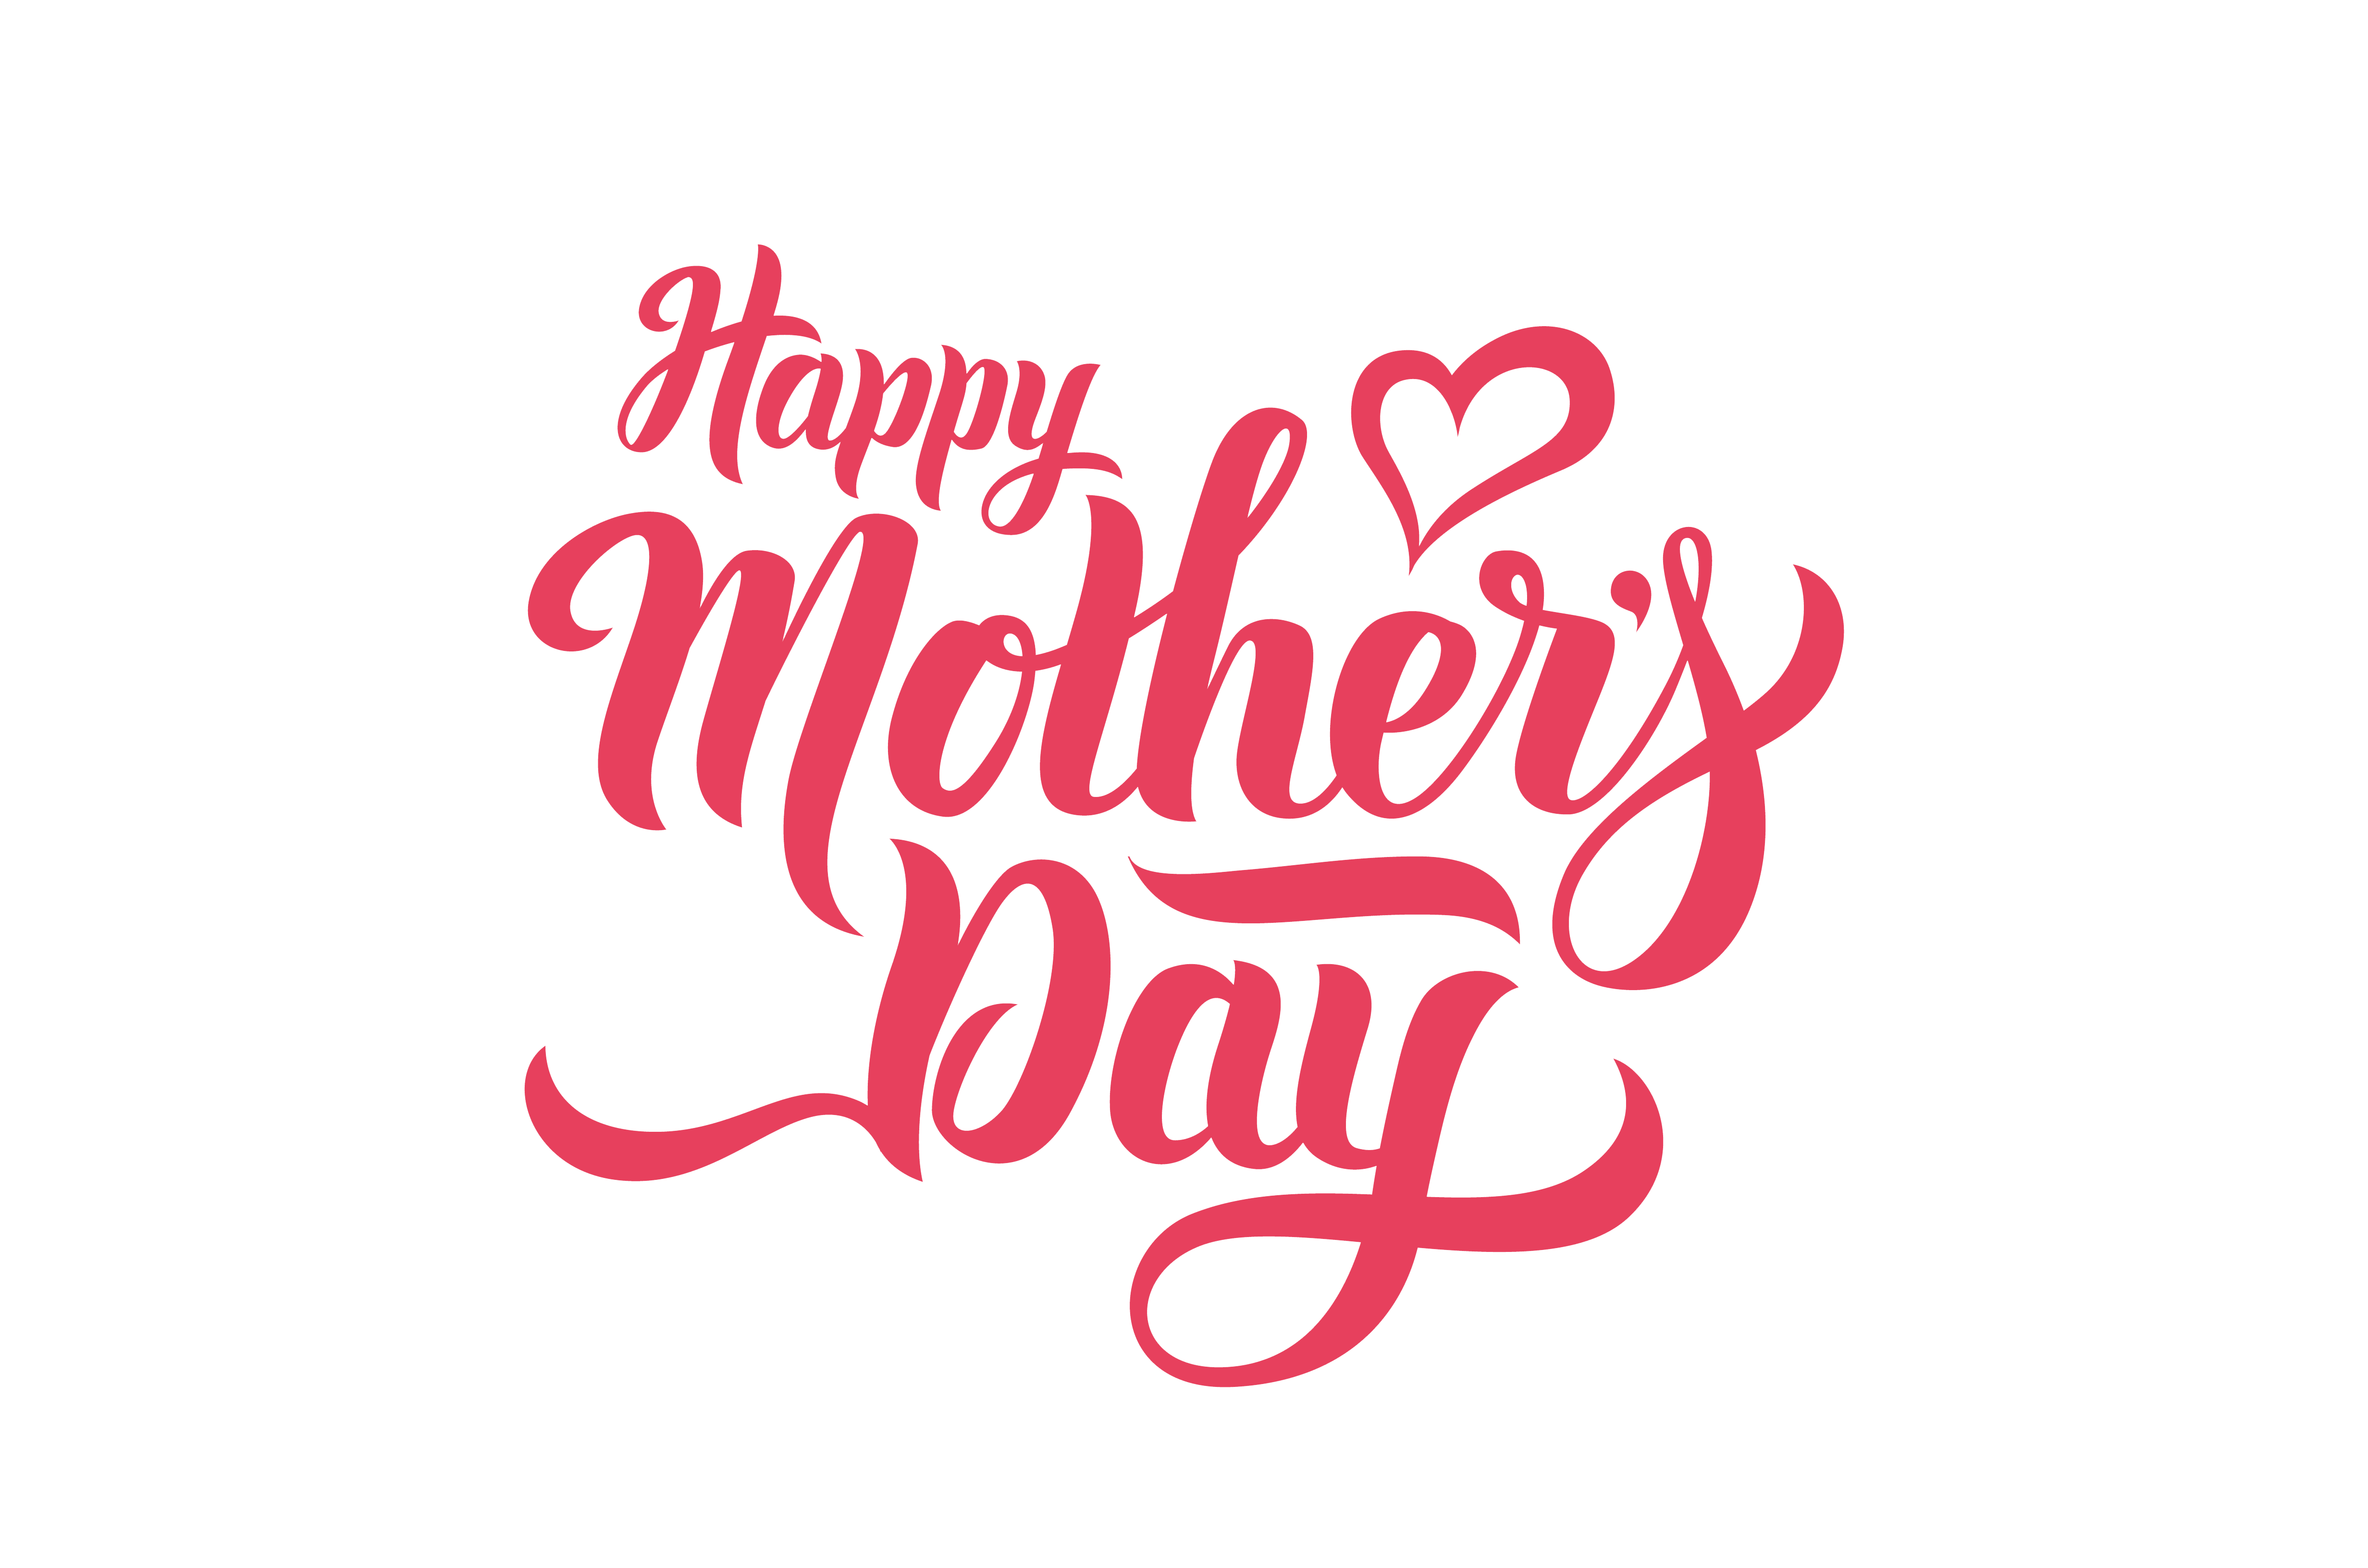 Mom Tattoo Transparent: Download Happy Mothers Day Mother'S Free Frame HQ PNG